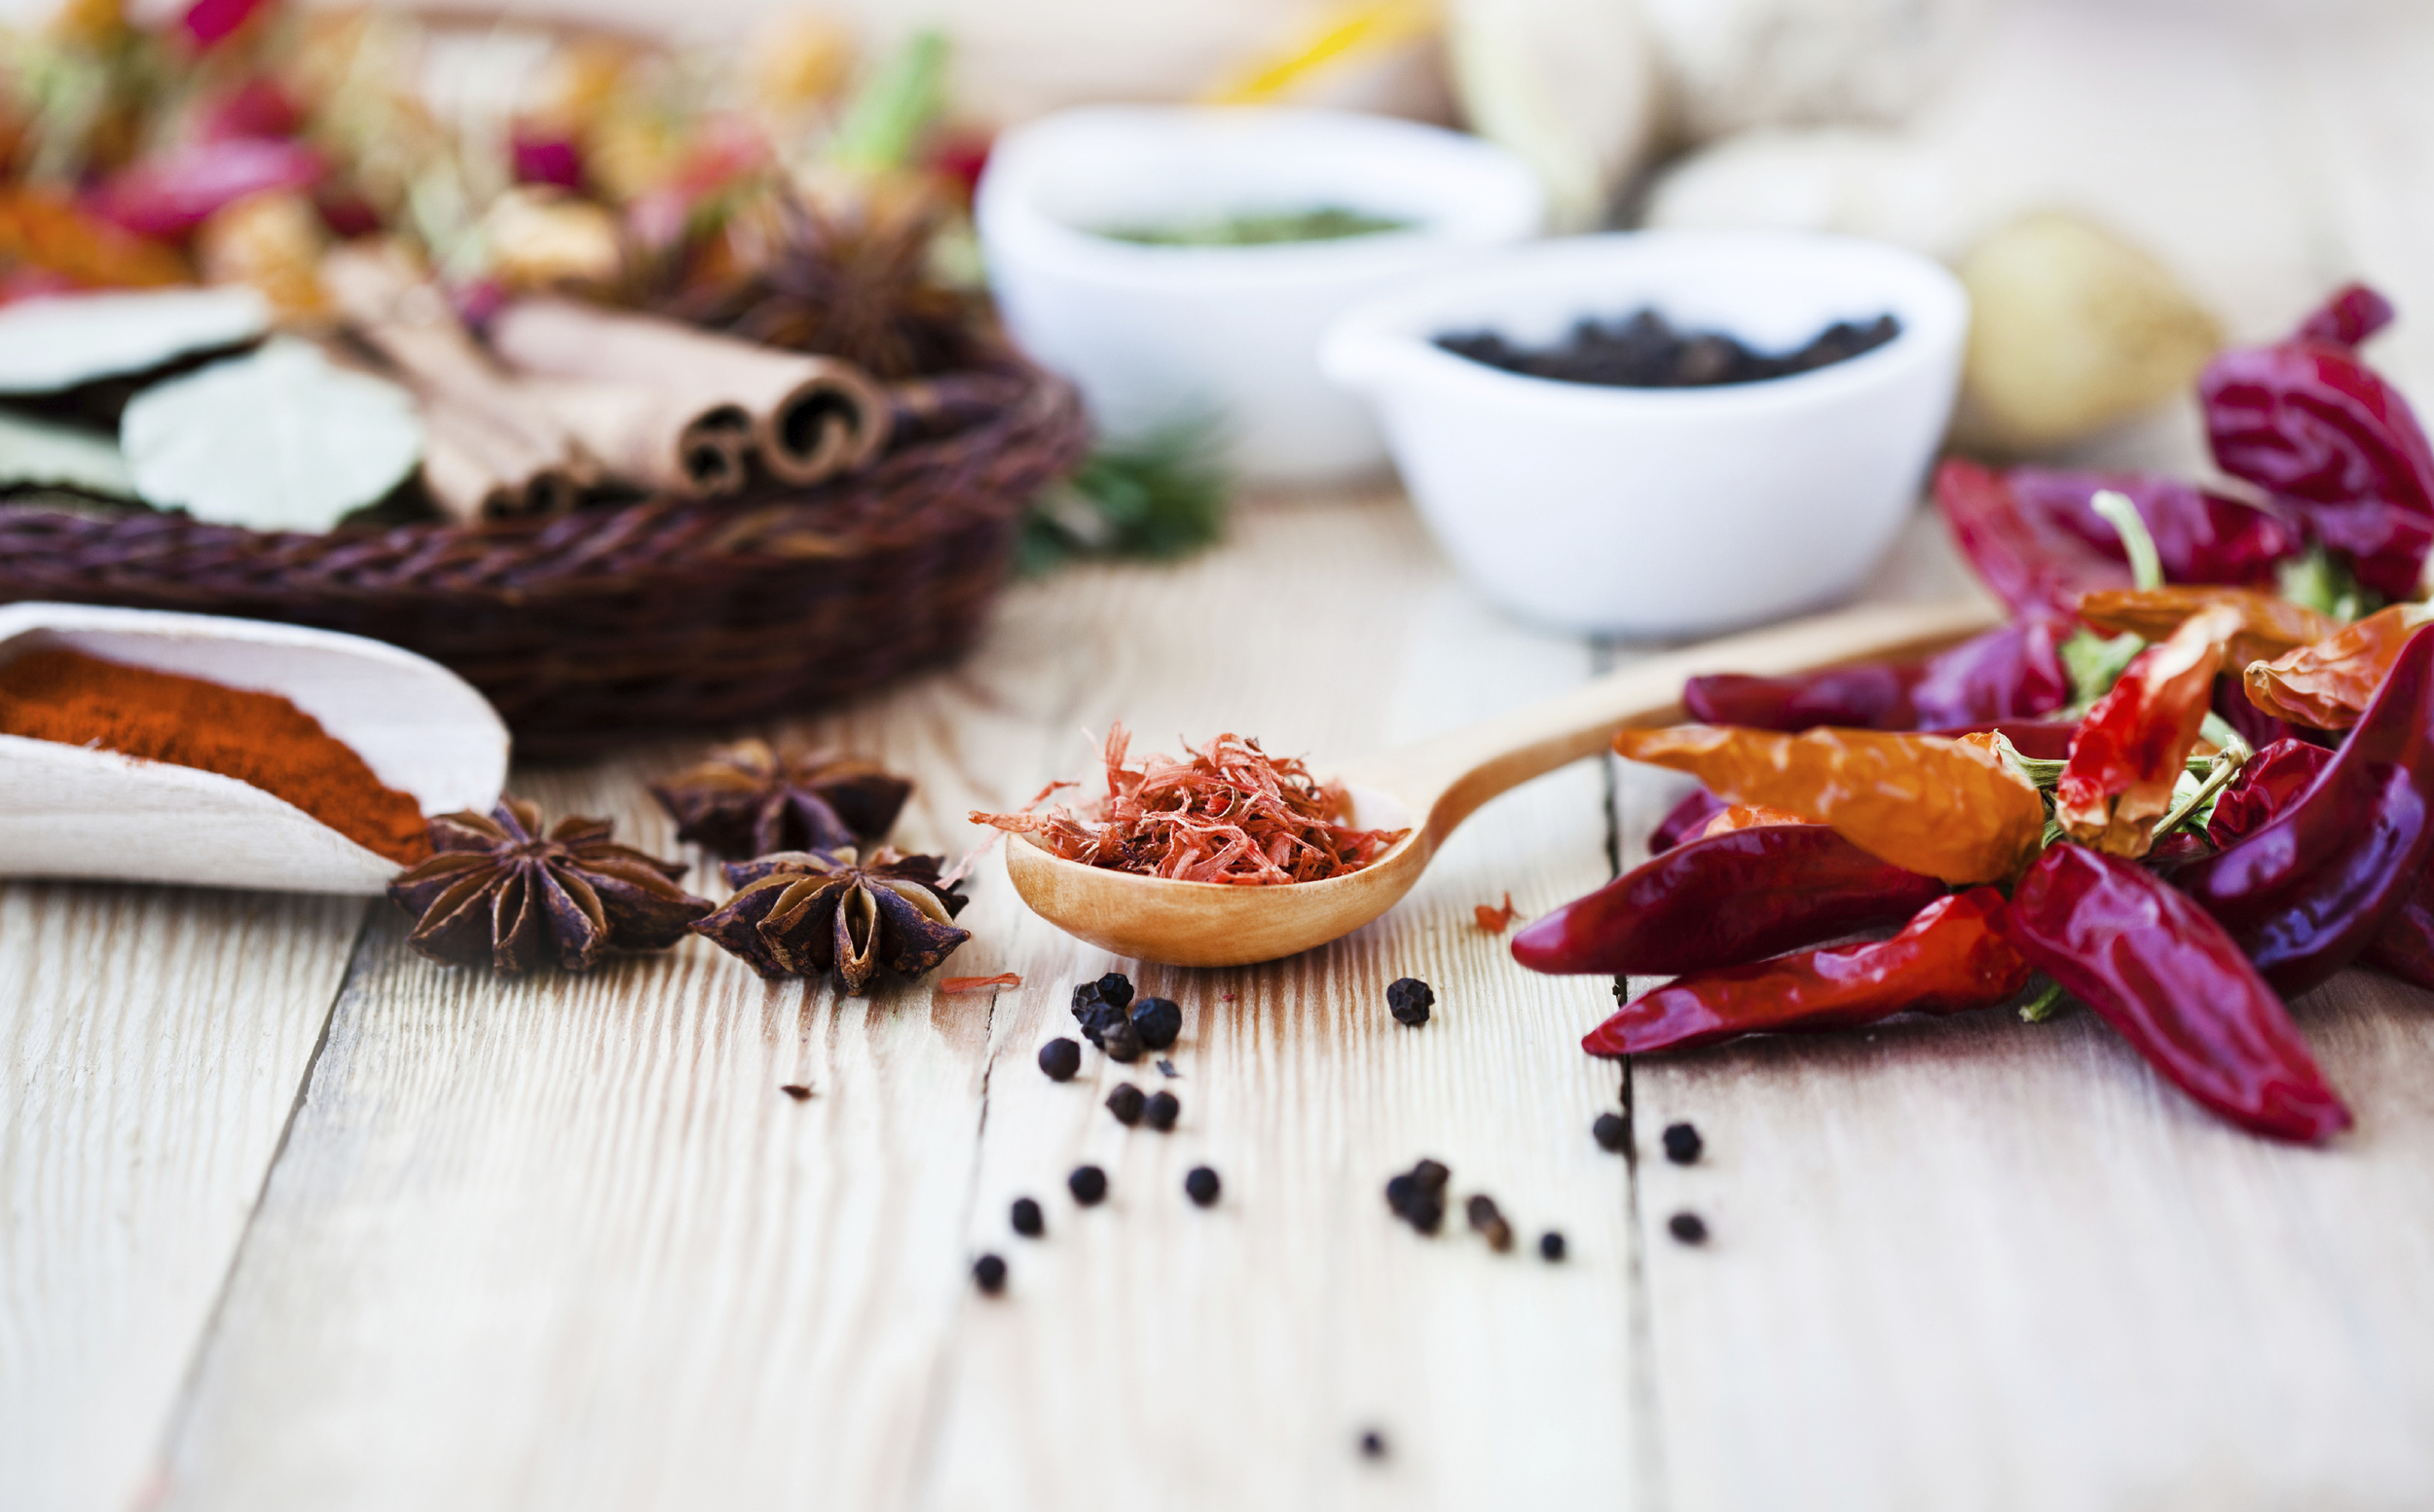 Food CCK Spices 16365310_Large.jpg